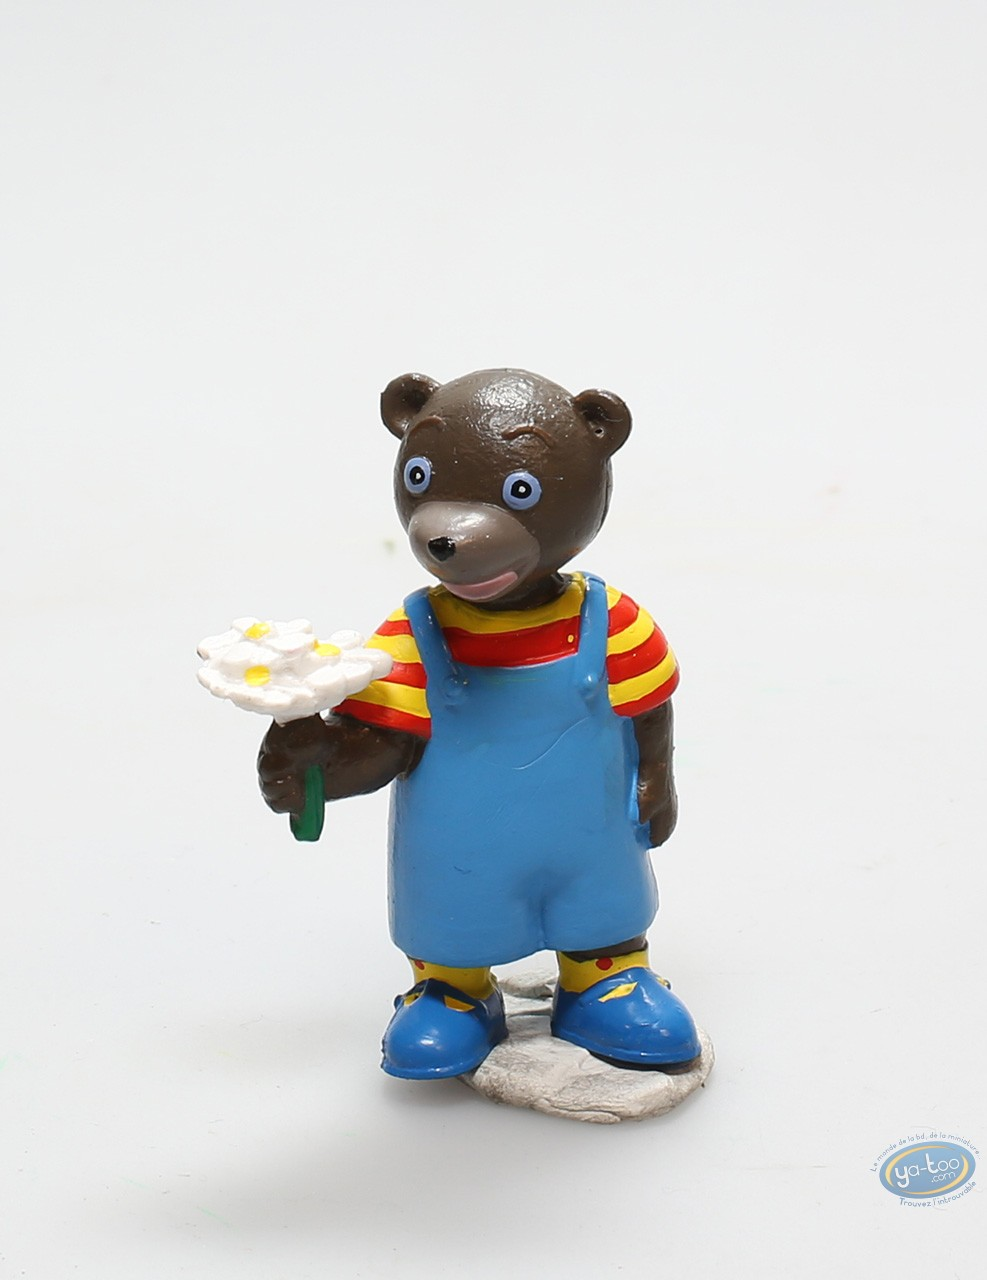 Plastic Figurine, Petit Ours Brun : little brown bear and his bunch of flowers